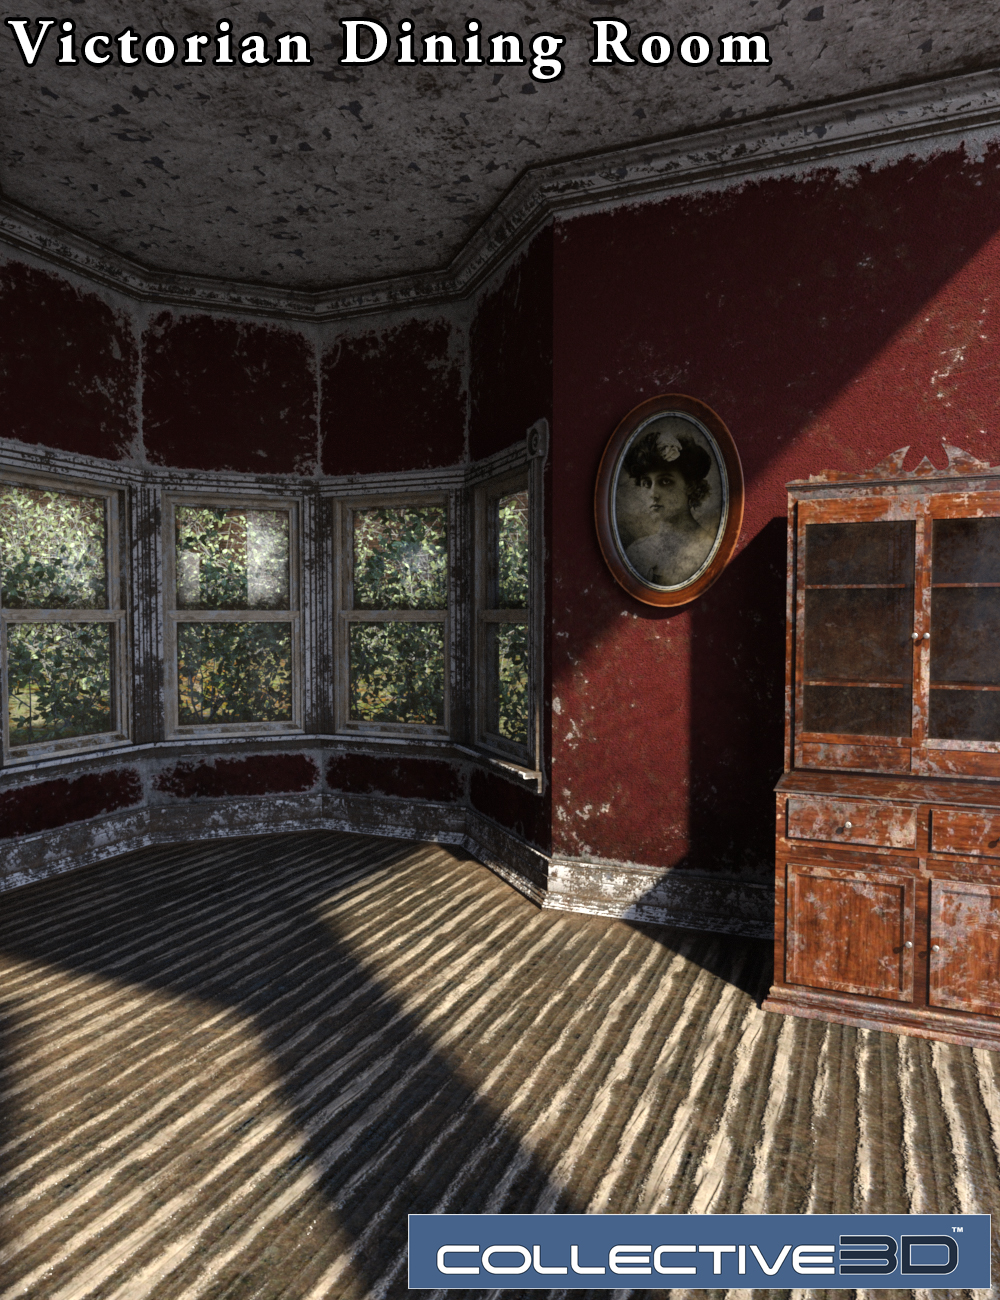 Collective3d Movie Sets Derelict Victorian Dining Room by: Collective3d, 3D Models by Daz 3D